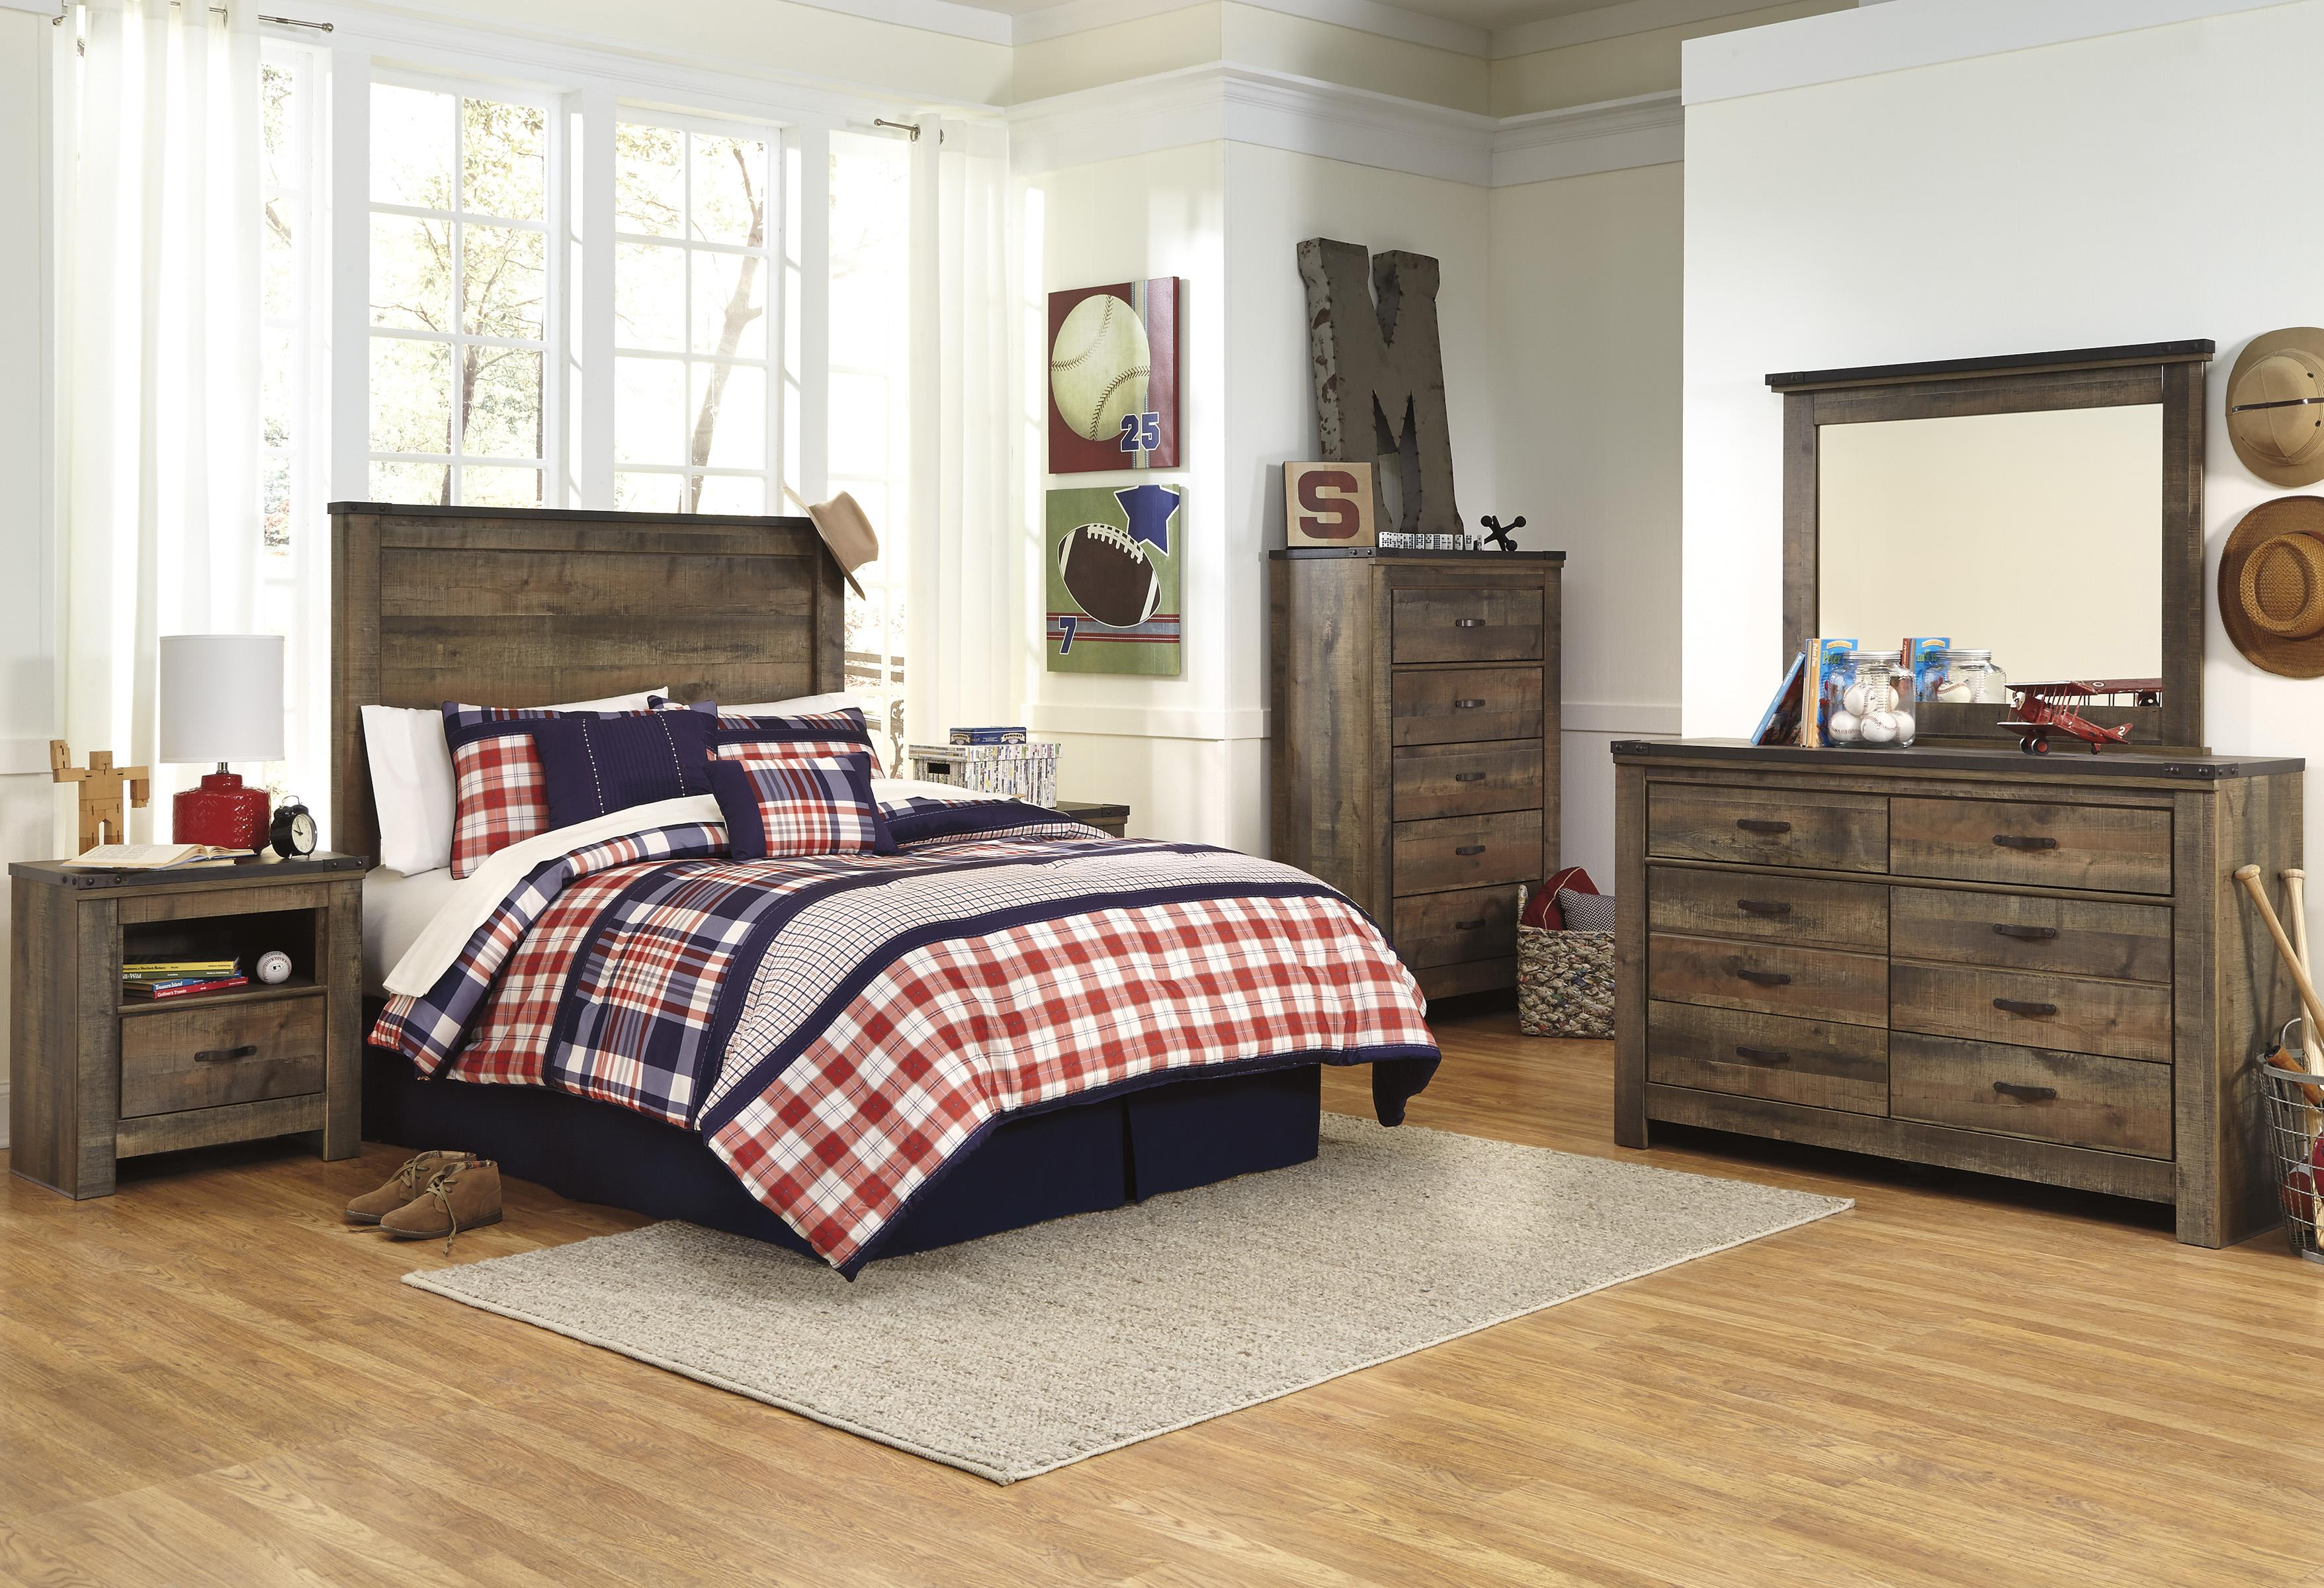 Signature Design by Ashley Trinell Full Bedroom Group - Item Number: B446 F Bedroom Group 1